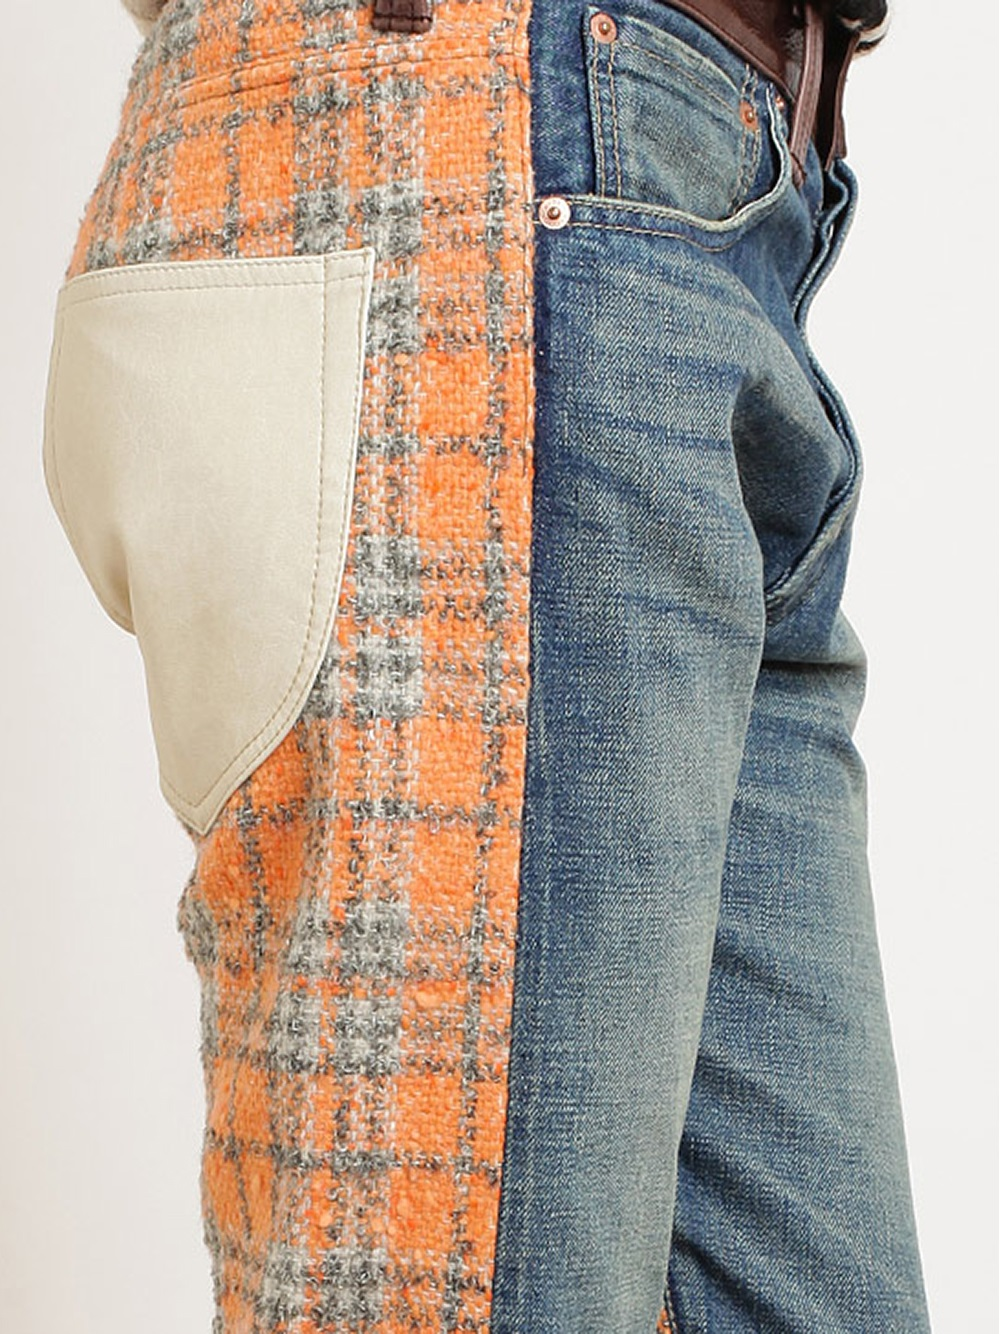 Junya Watanabe Tweed And Denim Cropped Jeans - Browns - Farfetch.com_files.jpg